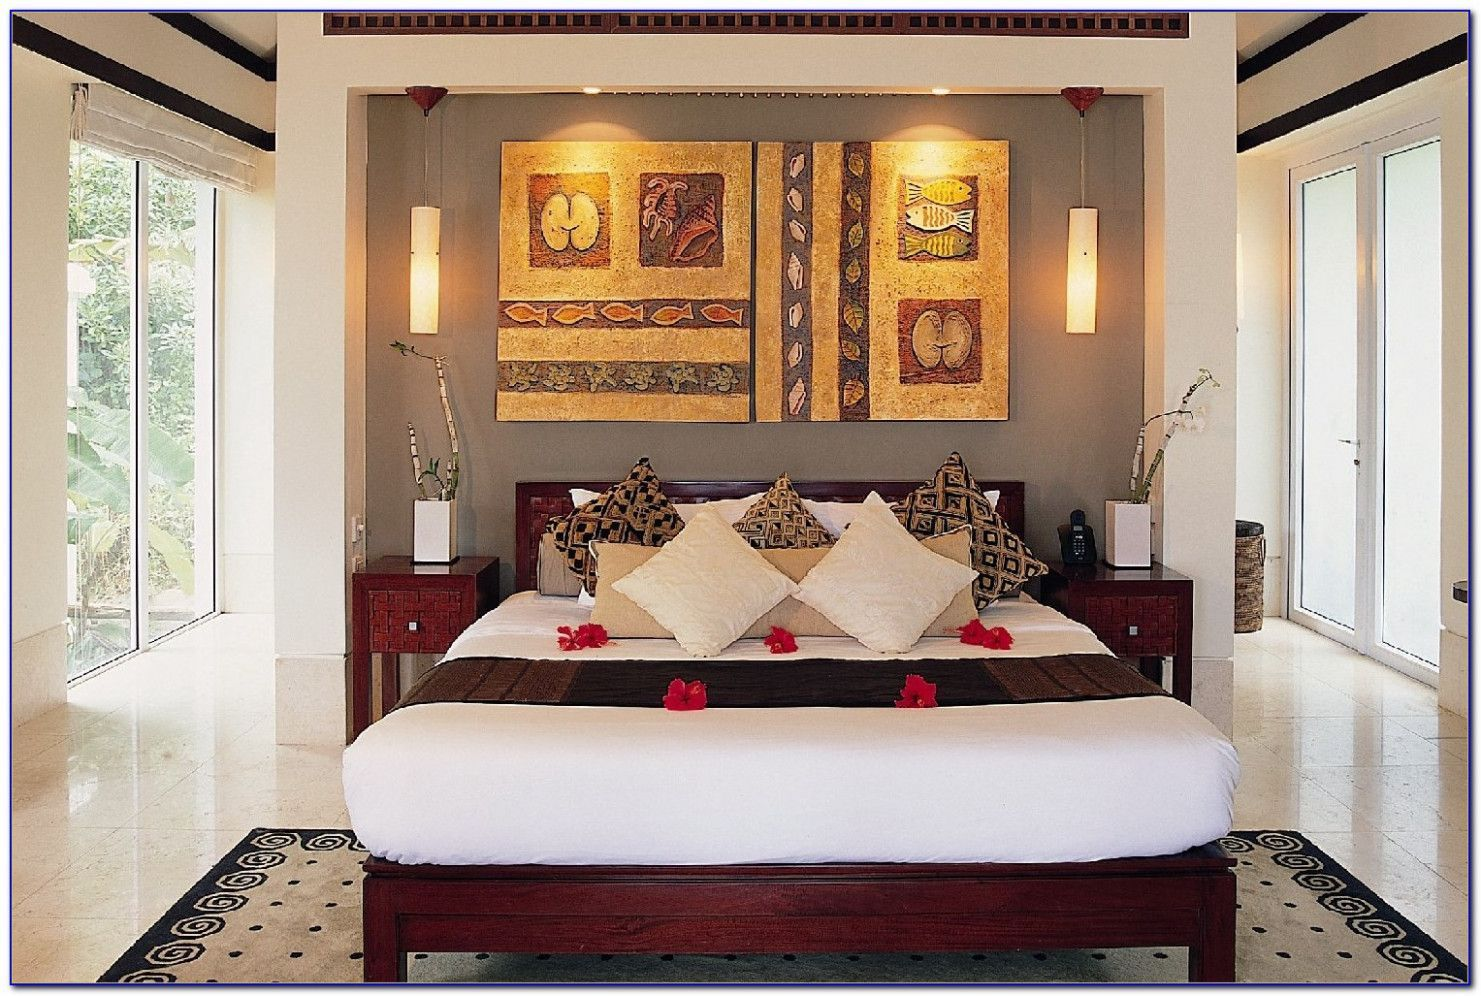 Indian bedroom Design - Bedroom Interior Designs India ...